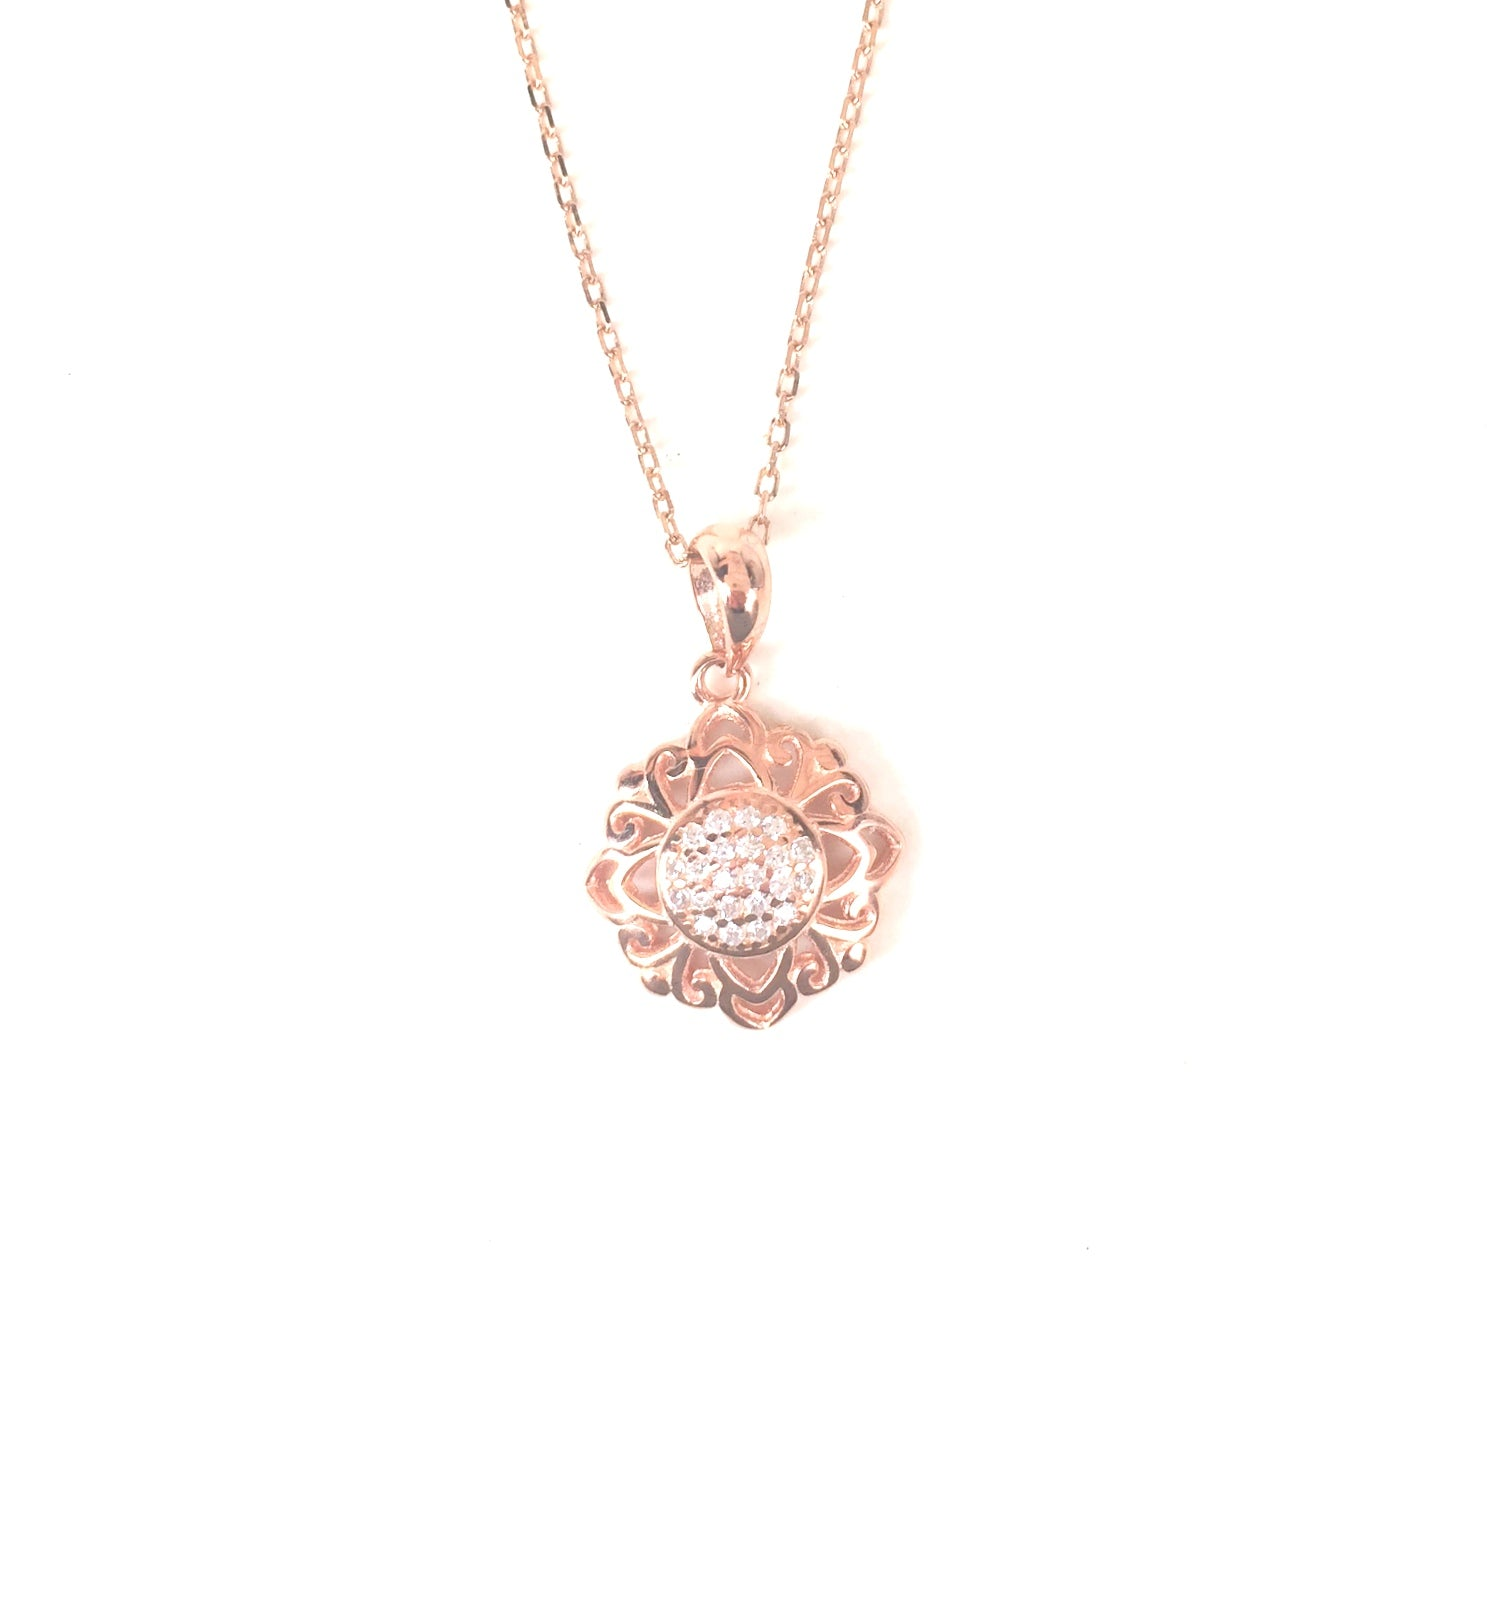 ROSE GOLD FLOWER PAVE CZ STERLING SILVER NECKLACE